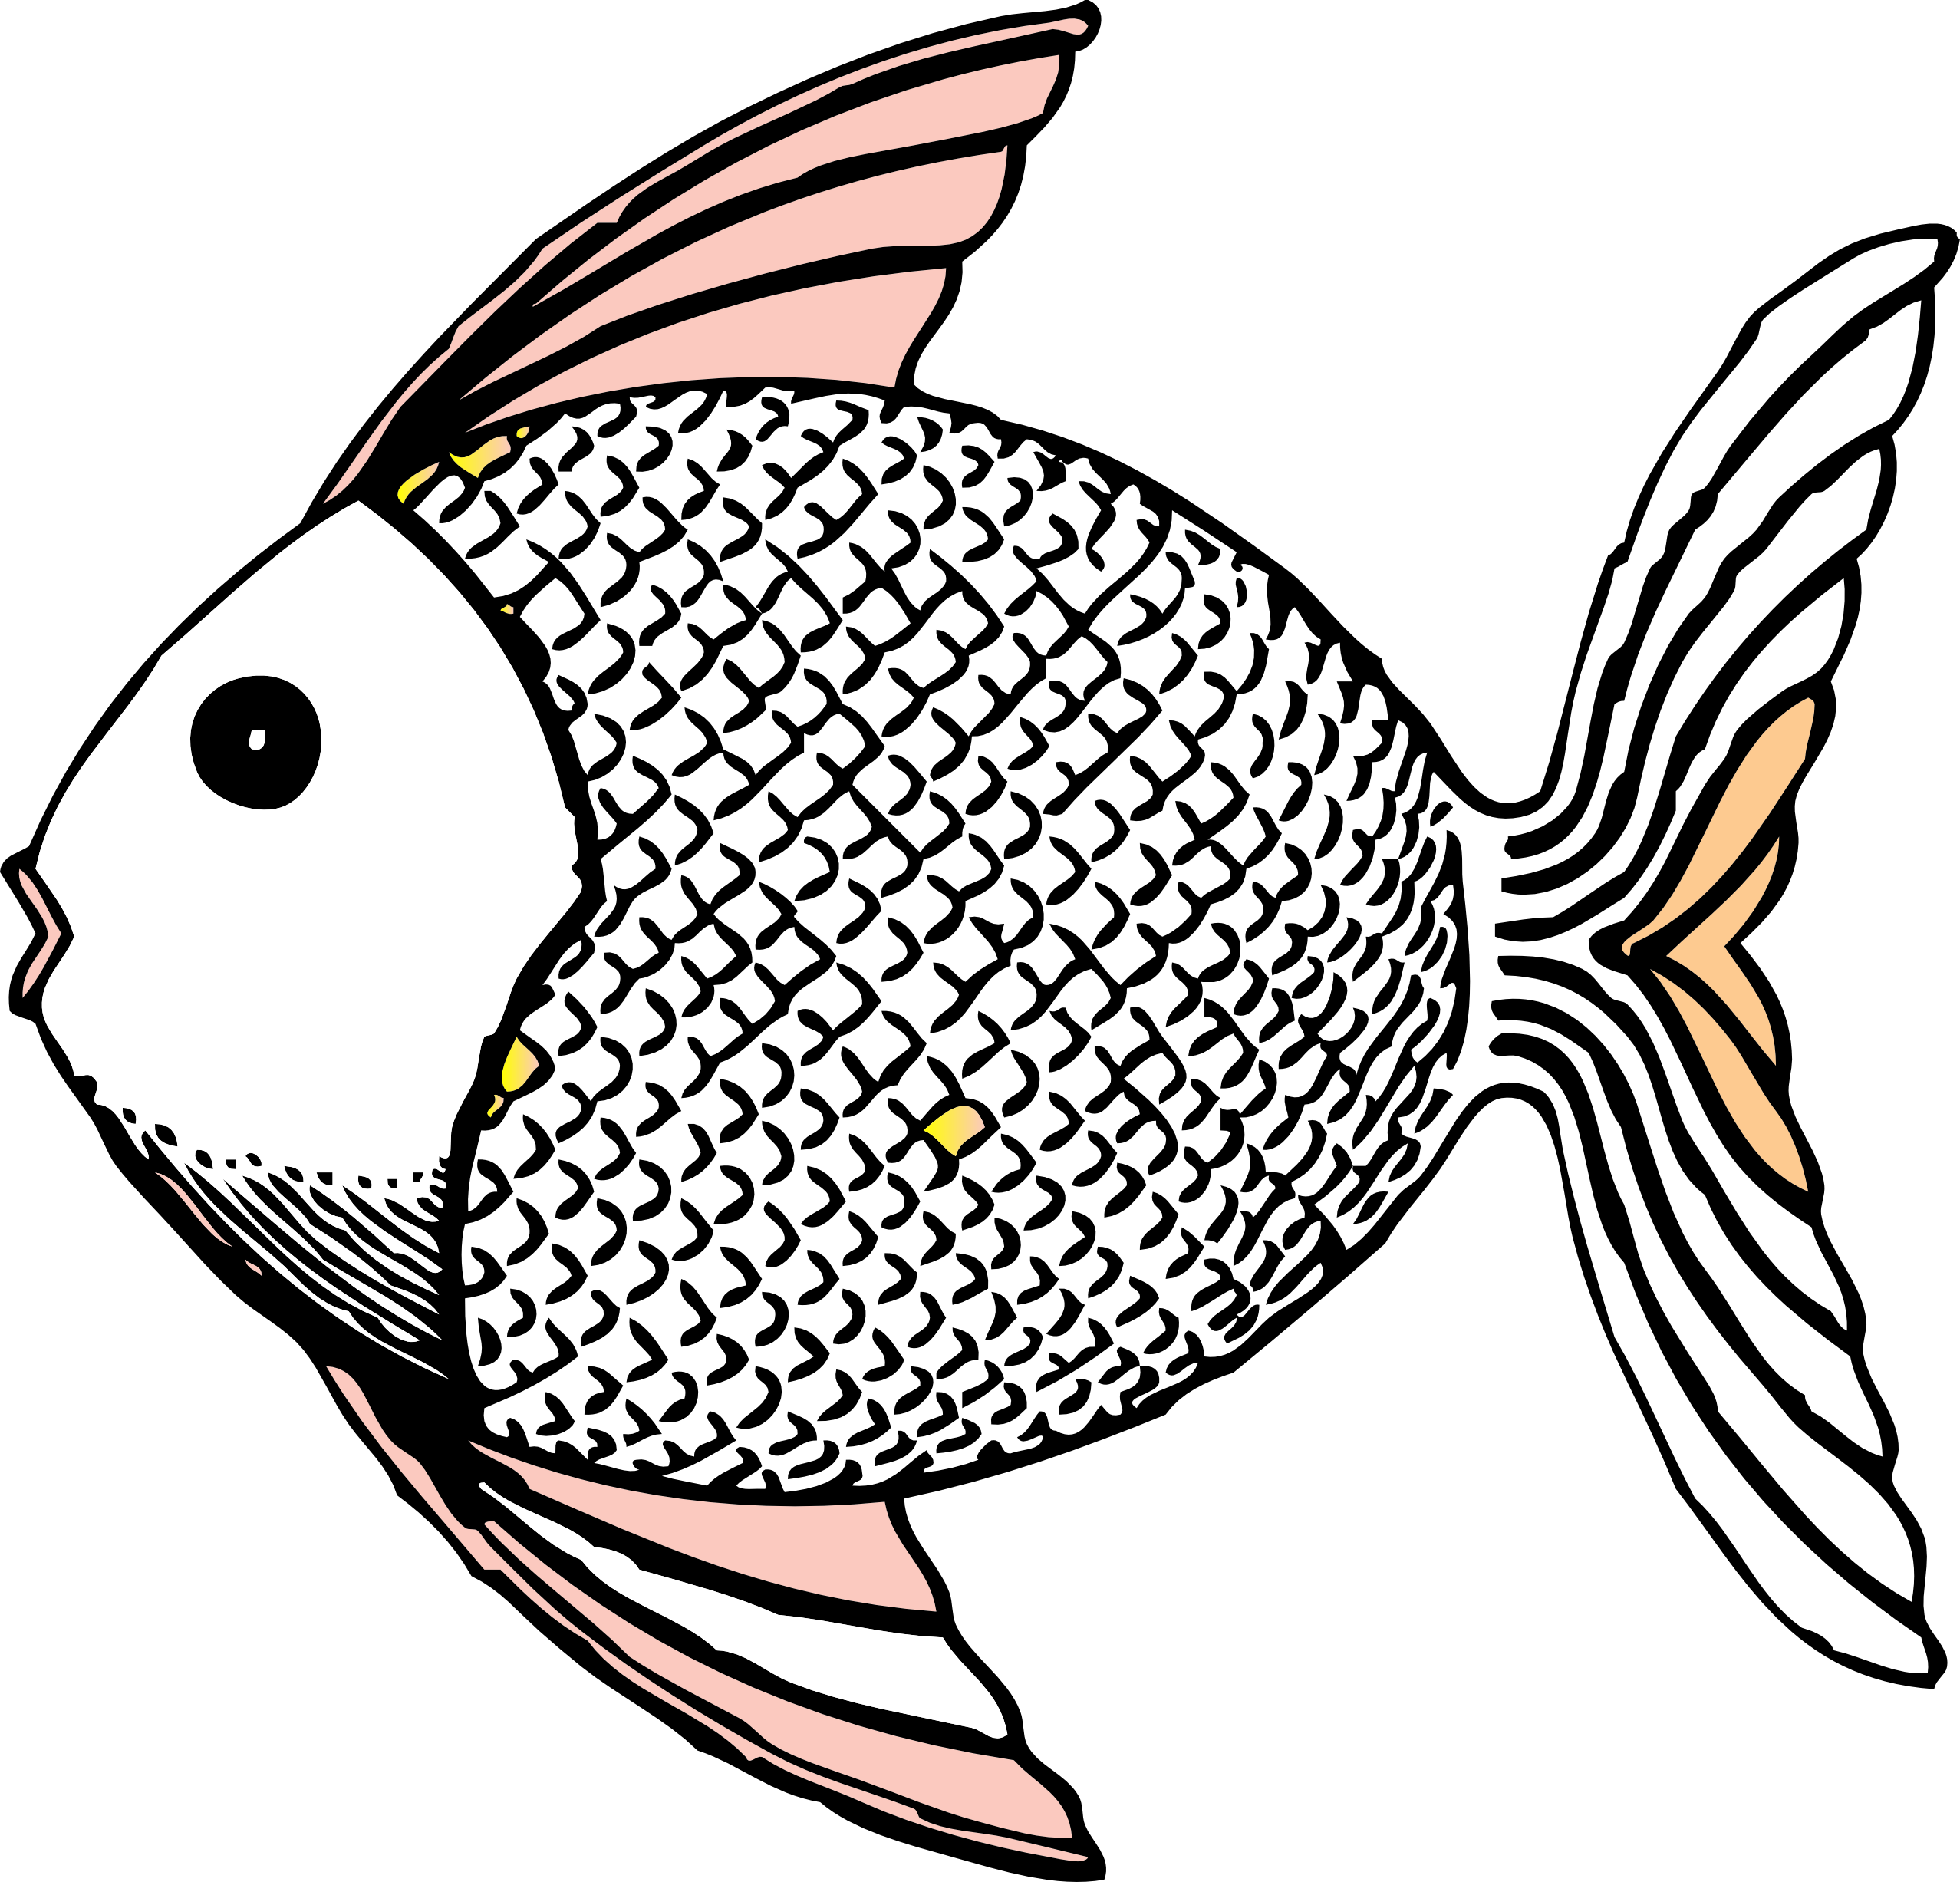 Fun fish clipart image black and white download Fish Clip Art Black and White | tropical fish black white line art ... image black and white download